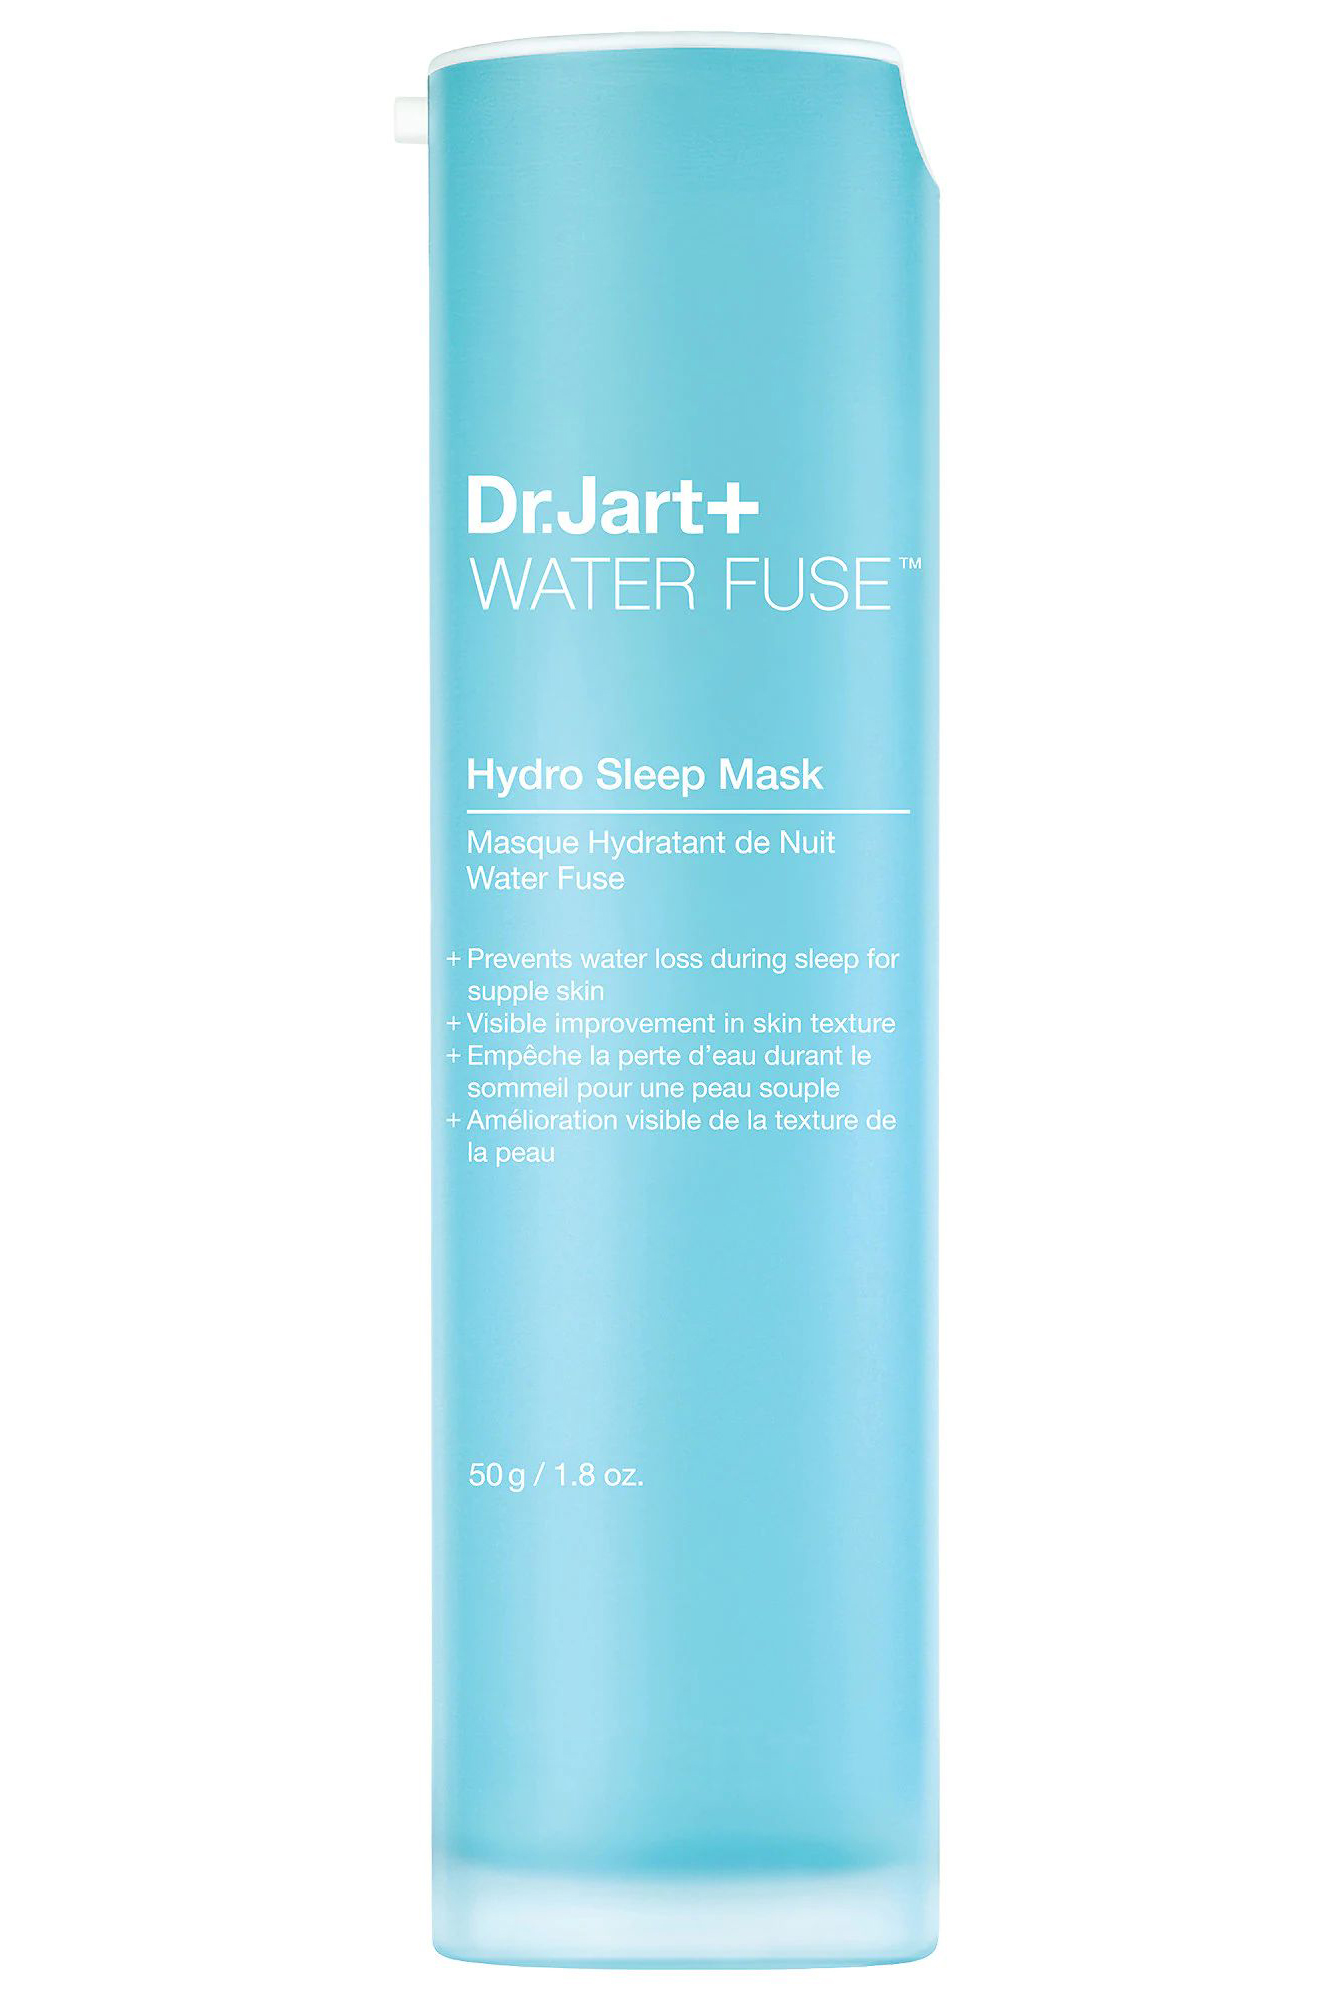 Best Face Masks: DR. JART+ Water Fuse Hydro Sleep Mask at Sephora